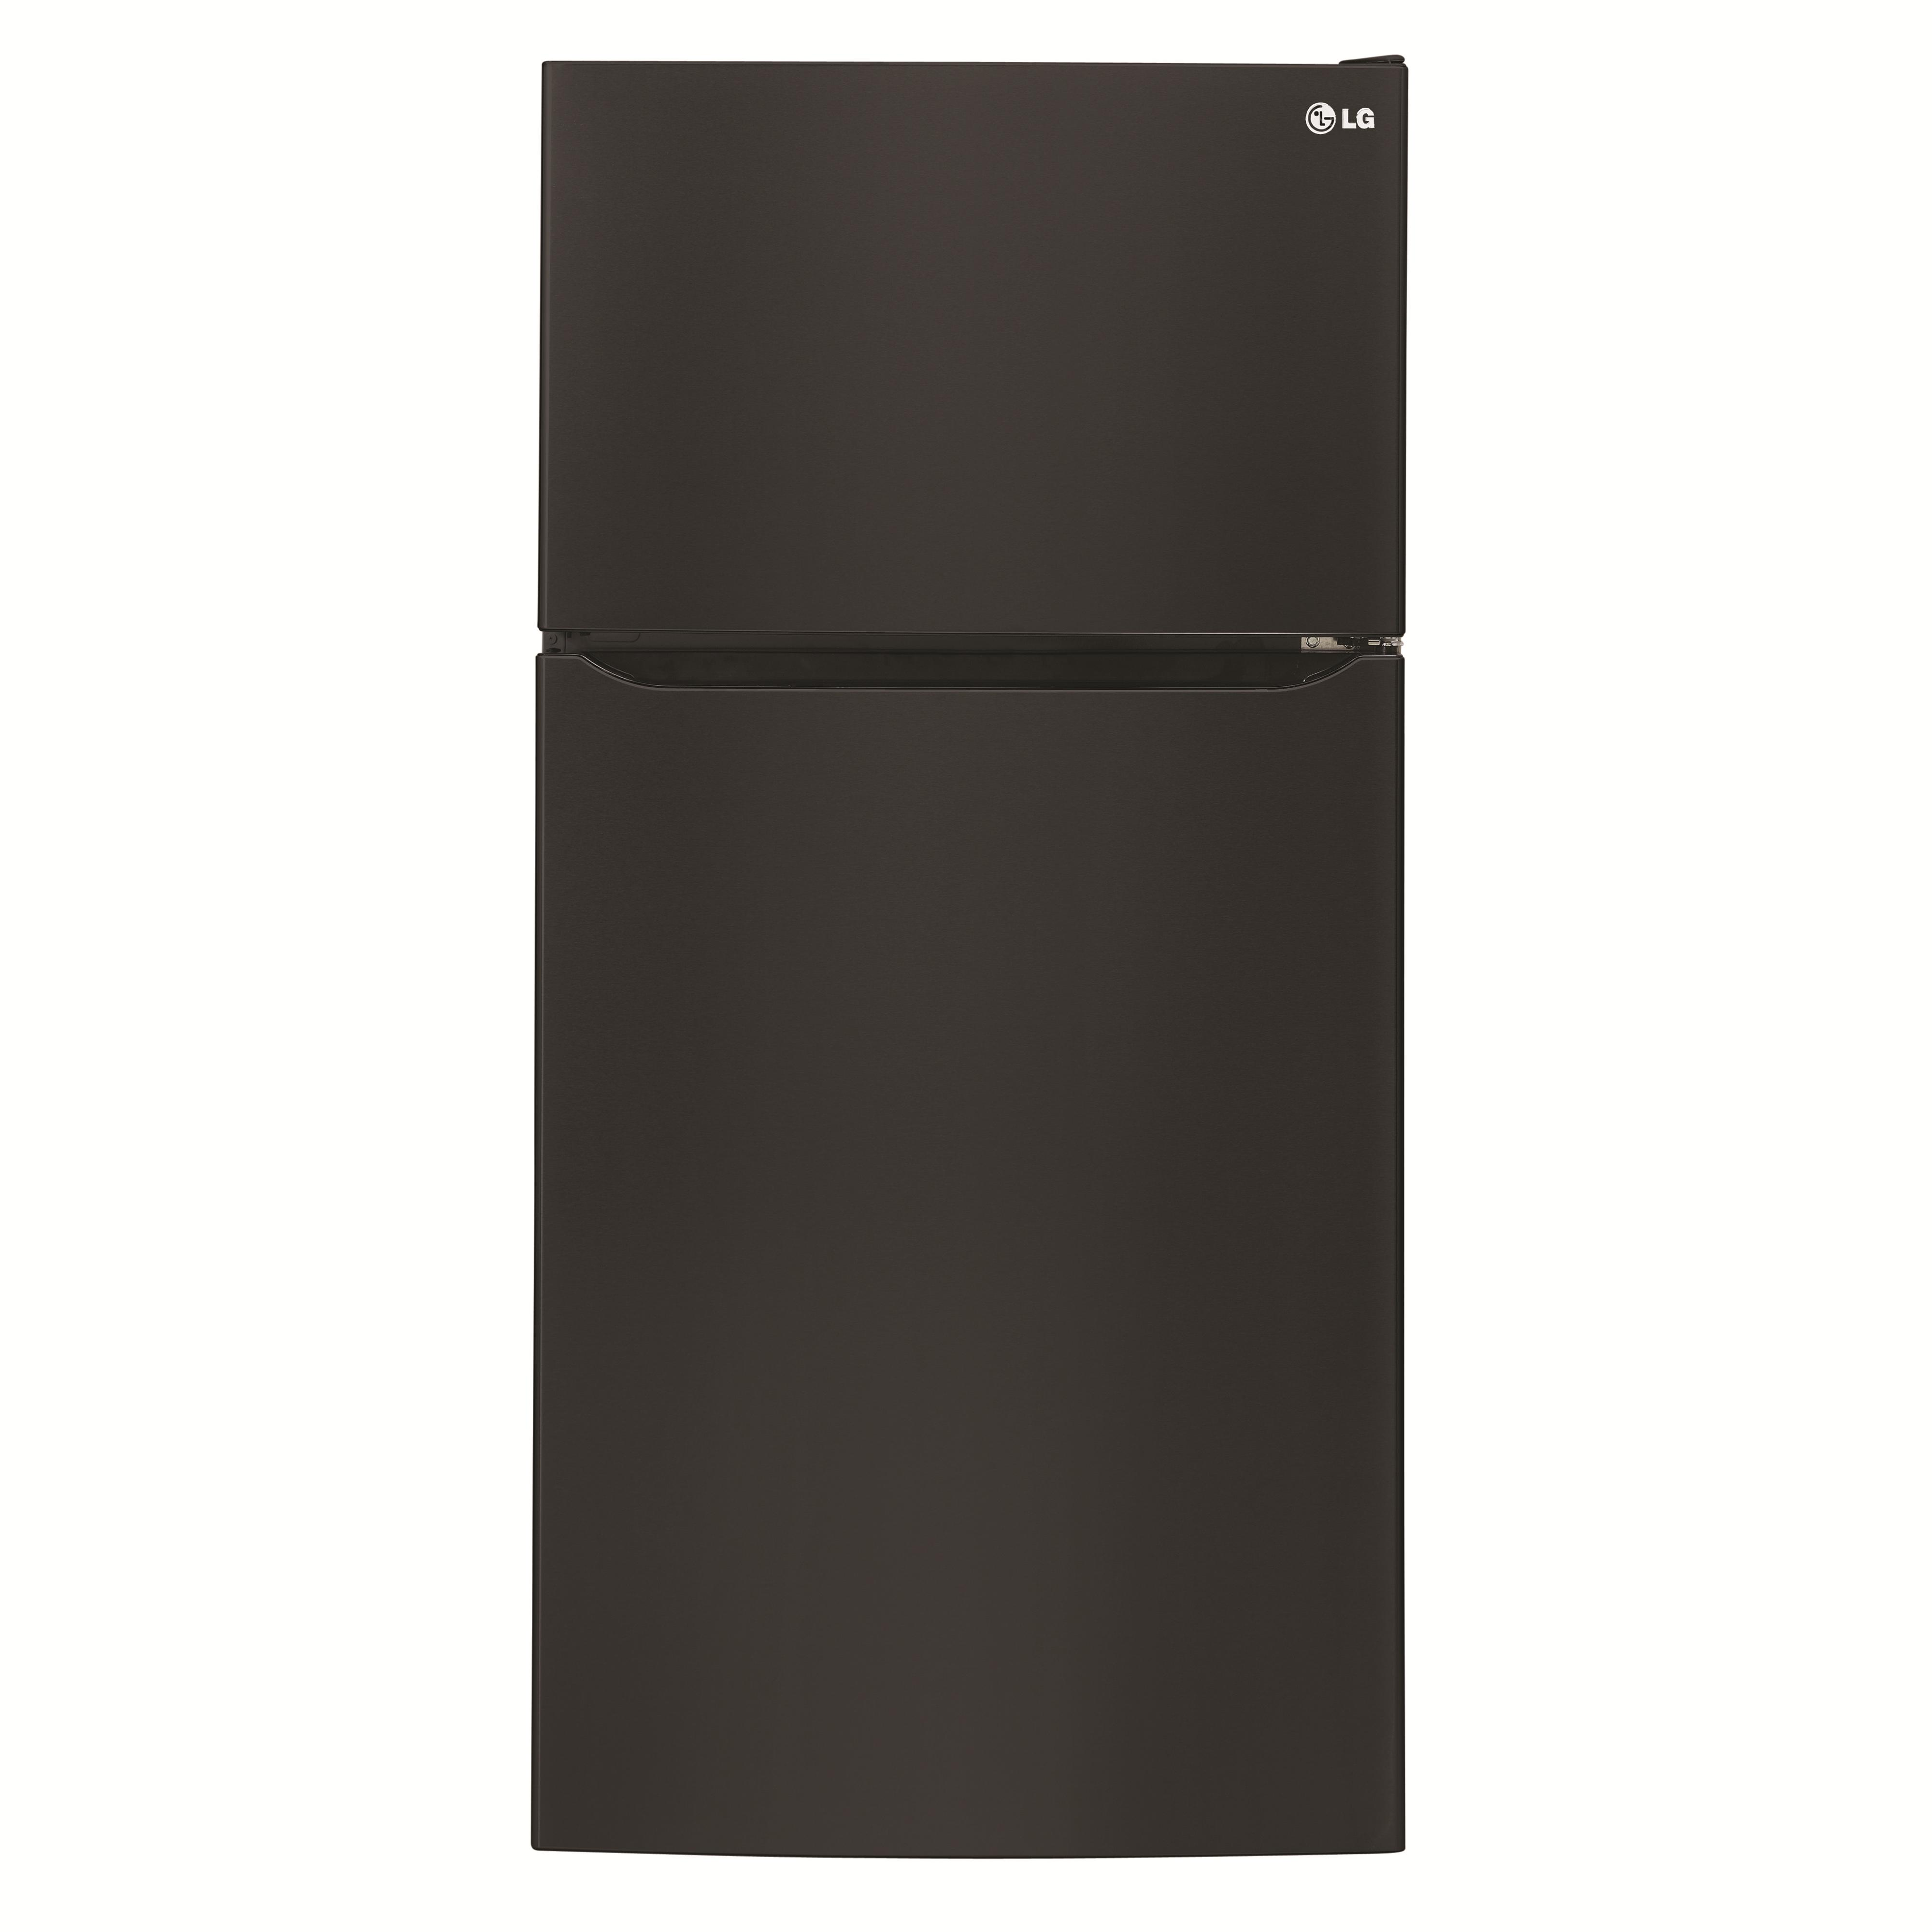 Top-Freezer Refrigerator 20 cu. ft. Wide Top Freezer Refrigerator by LG Appliances at Westrich Furniture & Appliances